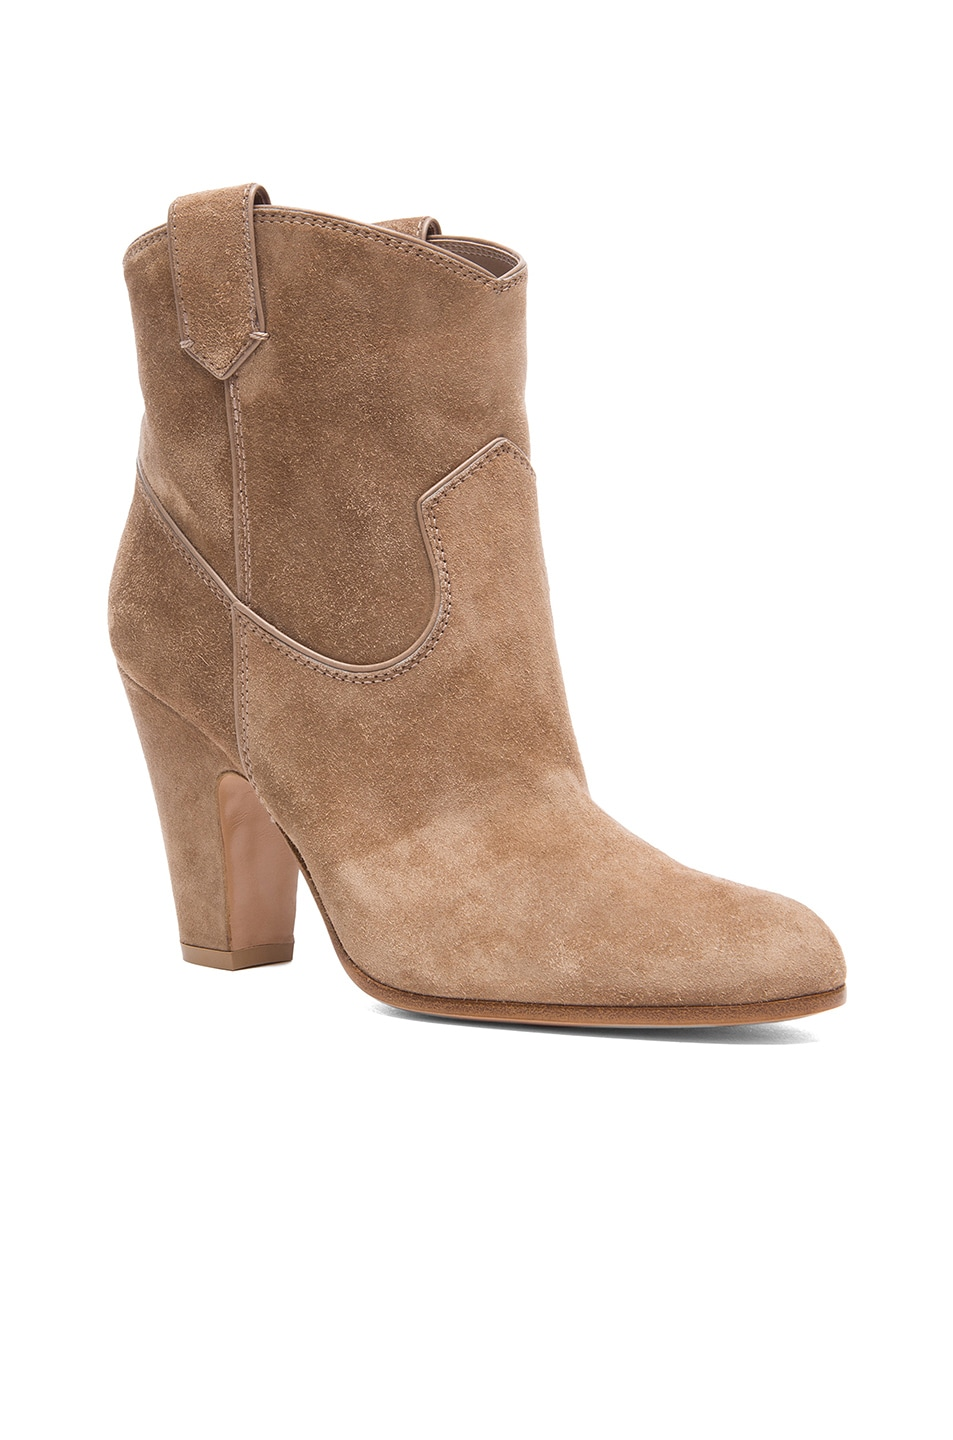 Image 2 of Gianvito Rossi Western Suede Booties in Suede Bisque